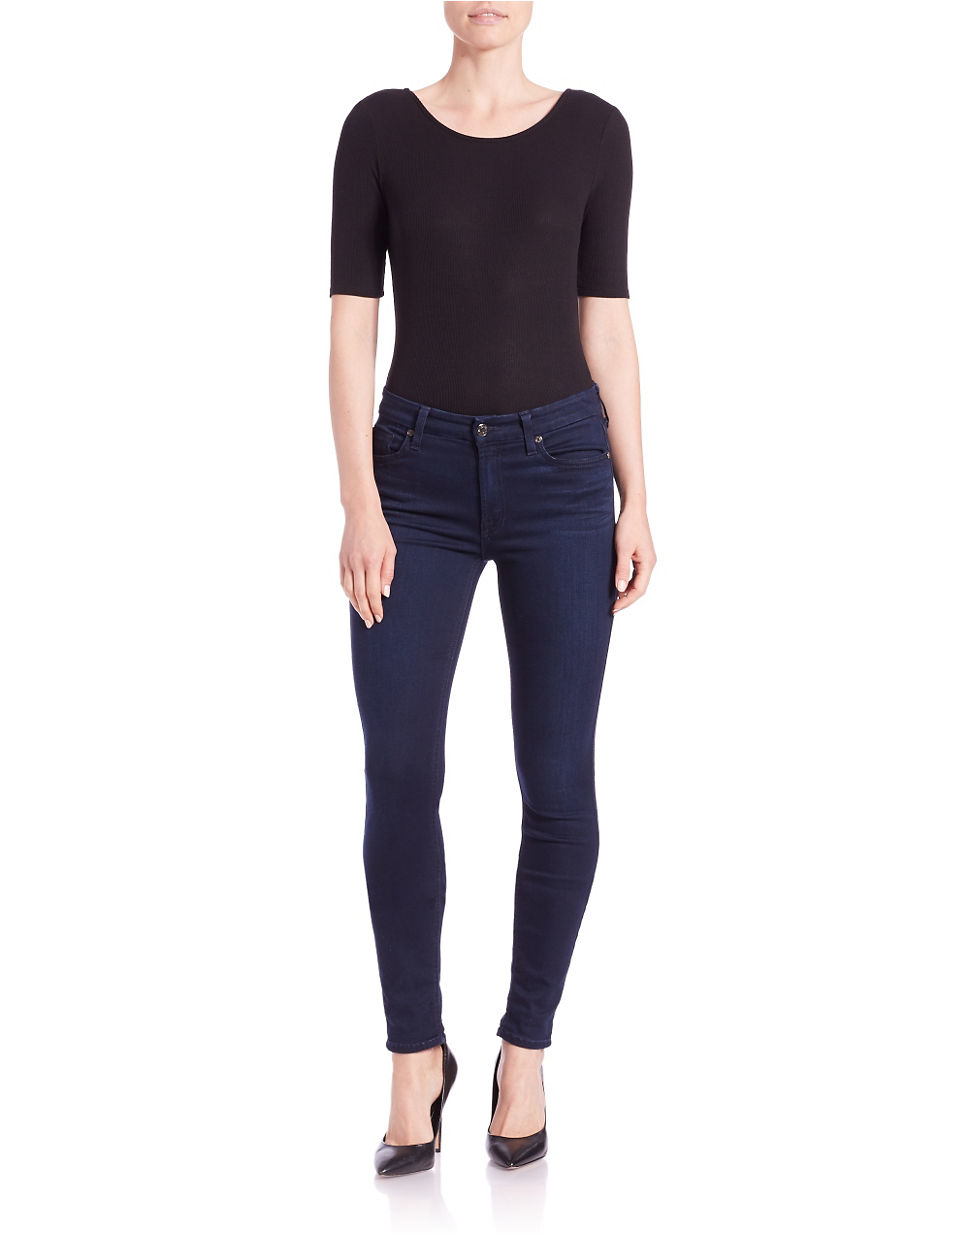 Lord Taylor Ribbed Knit Bodysuit In Black Lyst